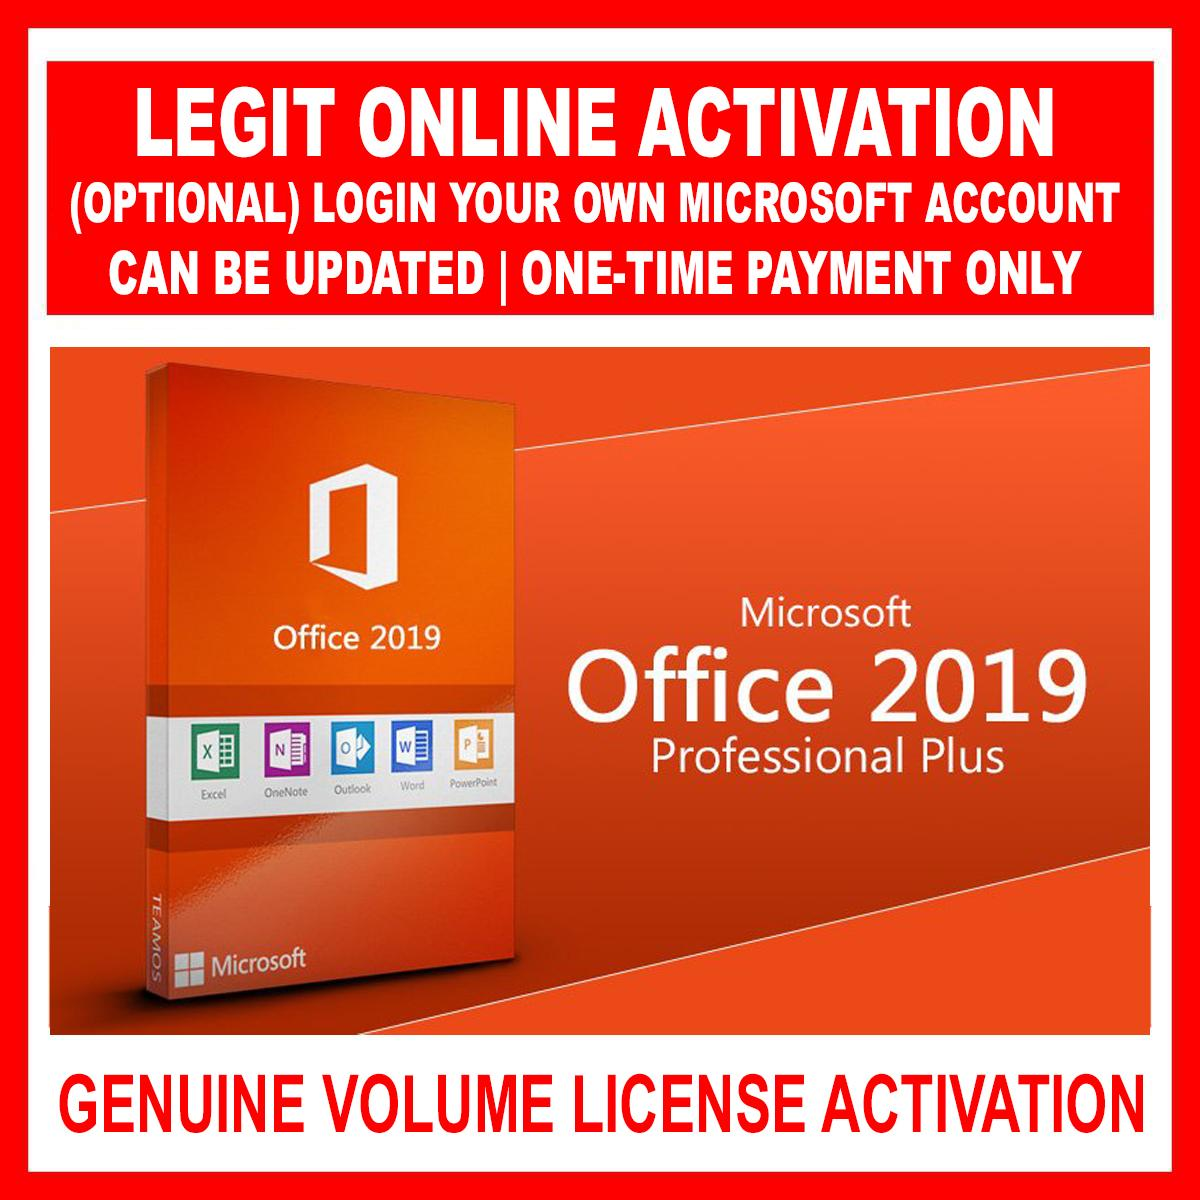 MS (Microsoft) Office Professional Plus 2019 for Windows 10 with Volume  License Activation up to 12 PC or Laptop can be updated and login own  account